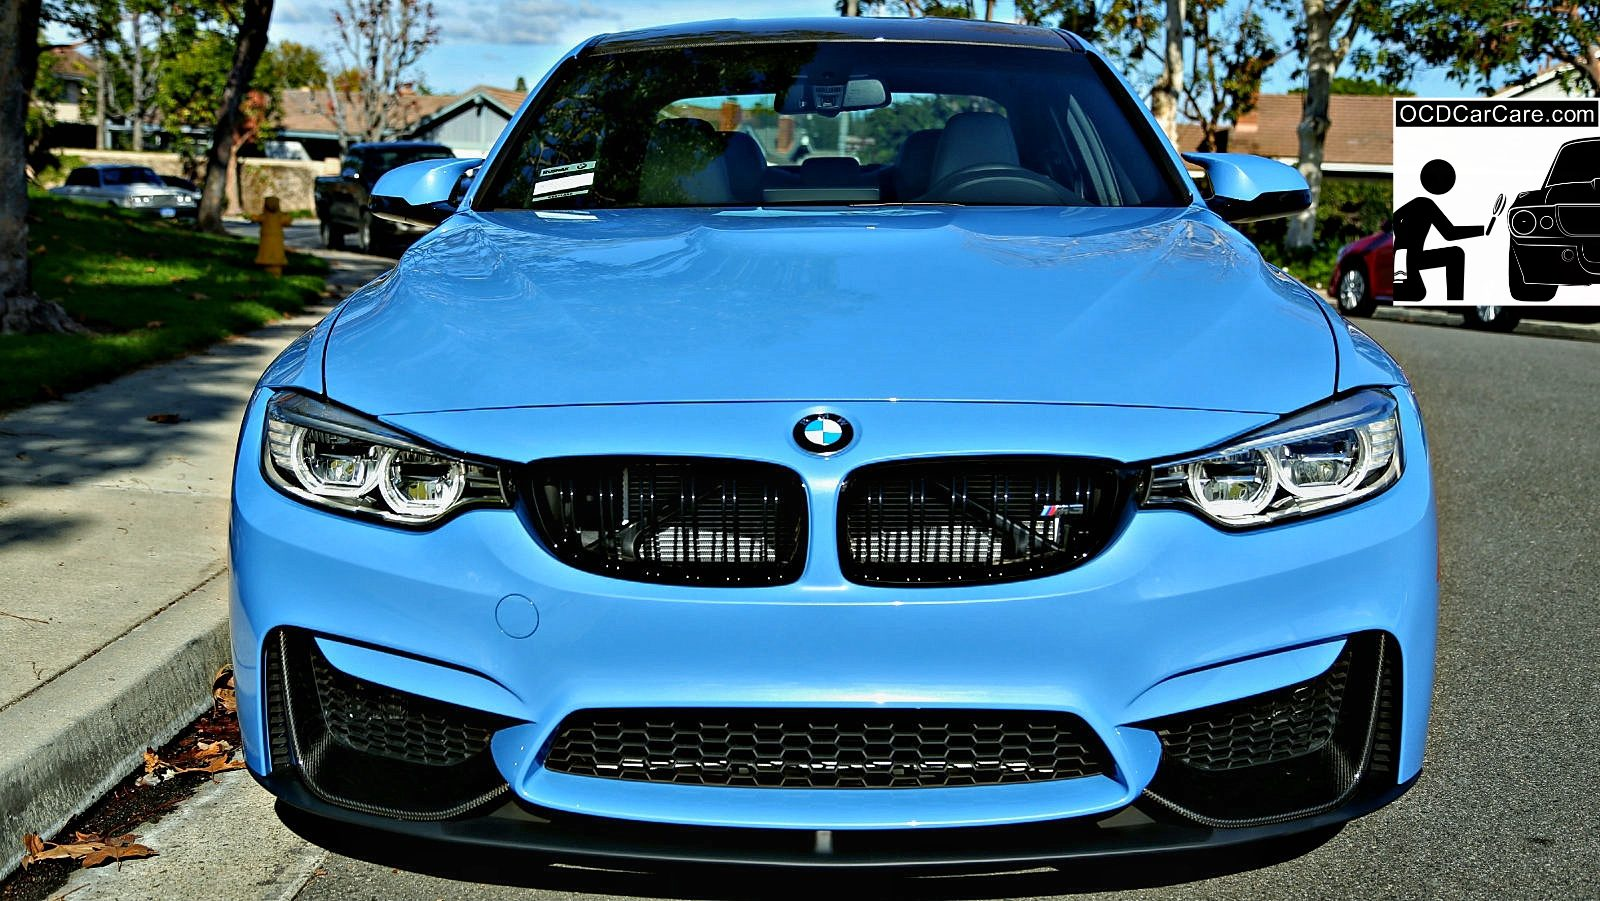 This Yas Marina BMW M3 displays beauty power & elegance afer a pro ceramic nano coating detail by OCDCarCare Los Angeles